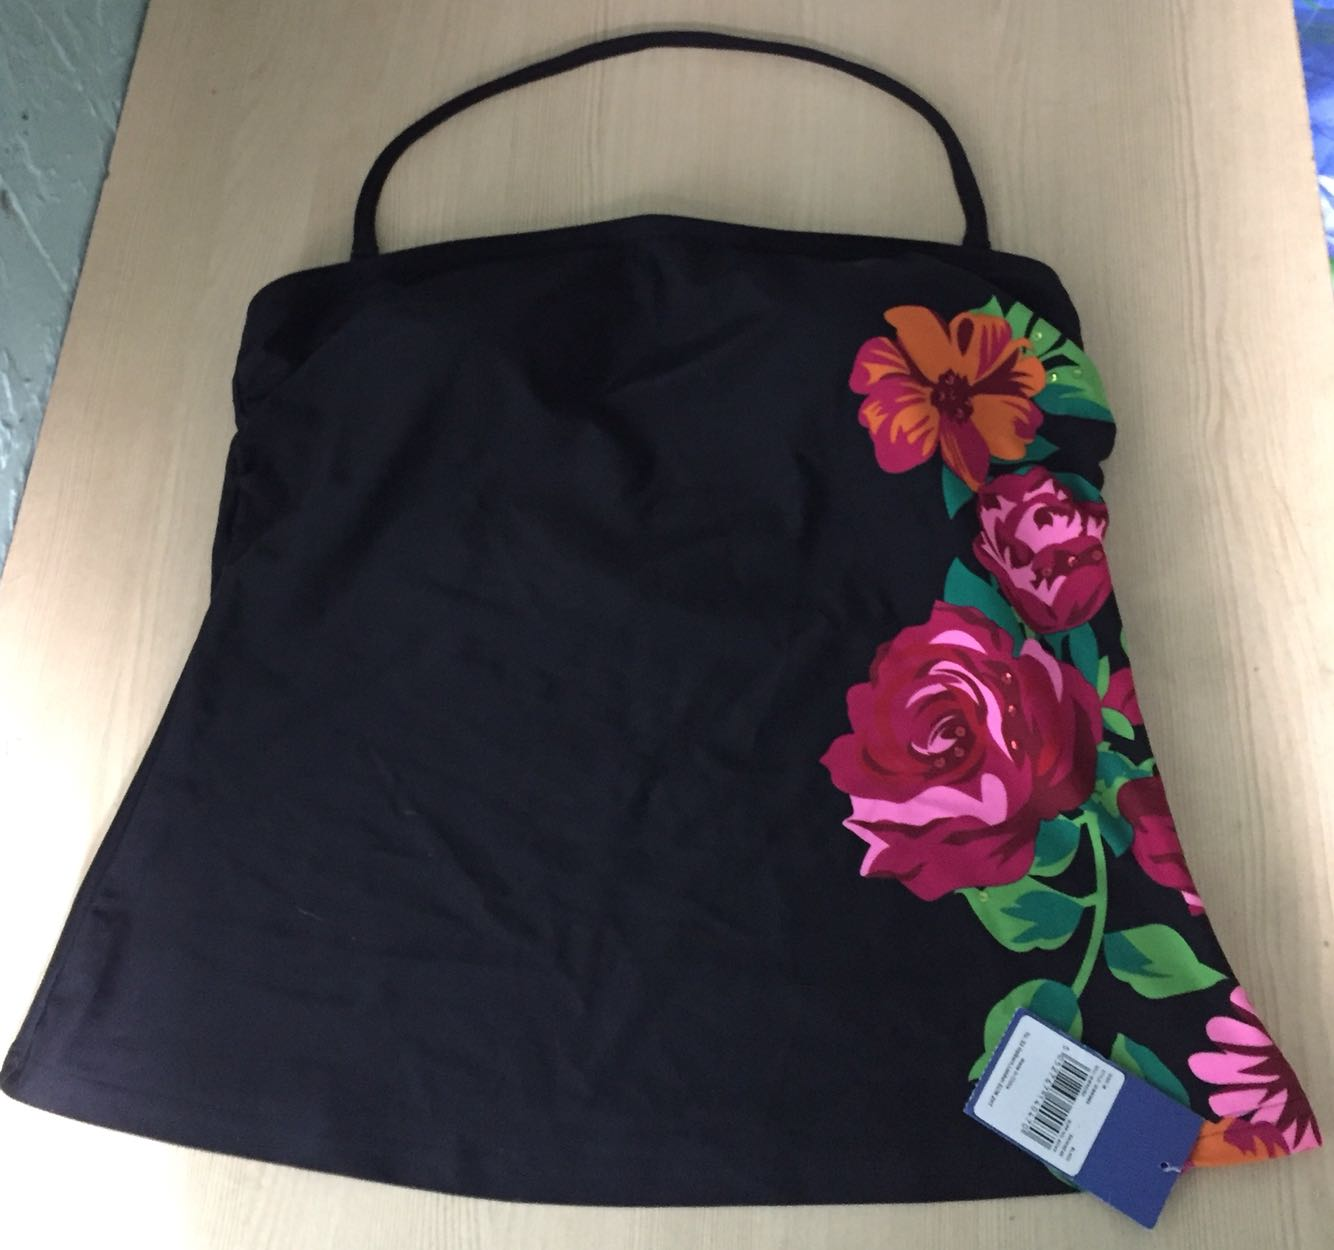 Size 18 bikini  tankini top - Sheffield, South Yorkshire - Brand new and unworn still with tags on, beautiful bikini top size 18. Black with floral design. If you have any questions please feel free to message me and I will get back to you as soon as possible. Thank you for looking :) - Sheffield, South Yorkshire